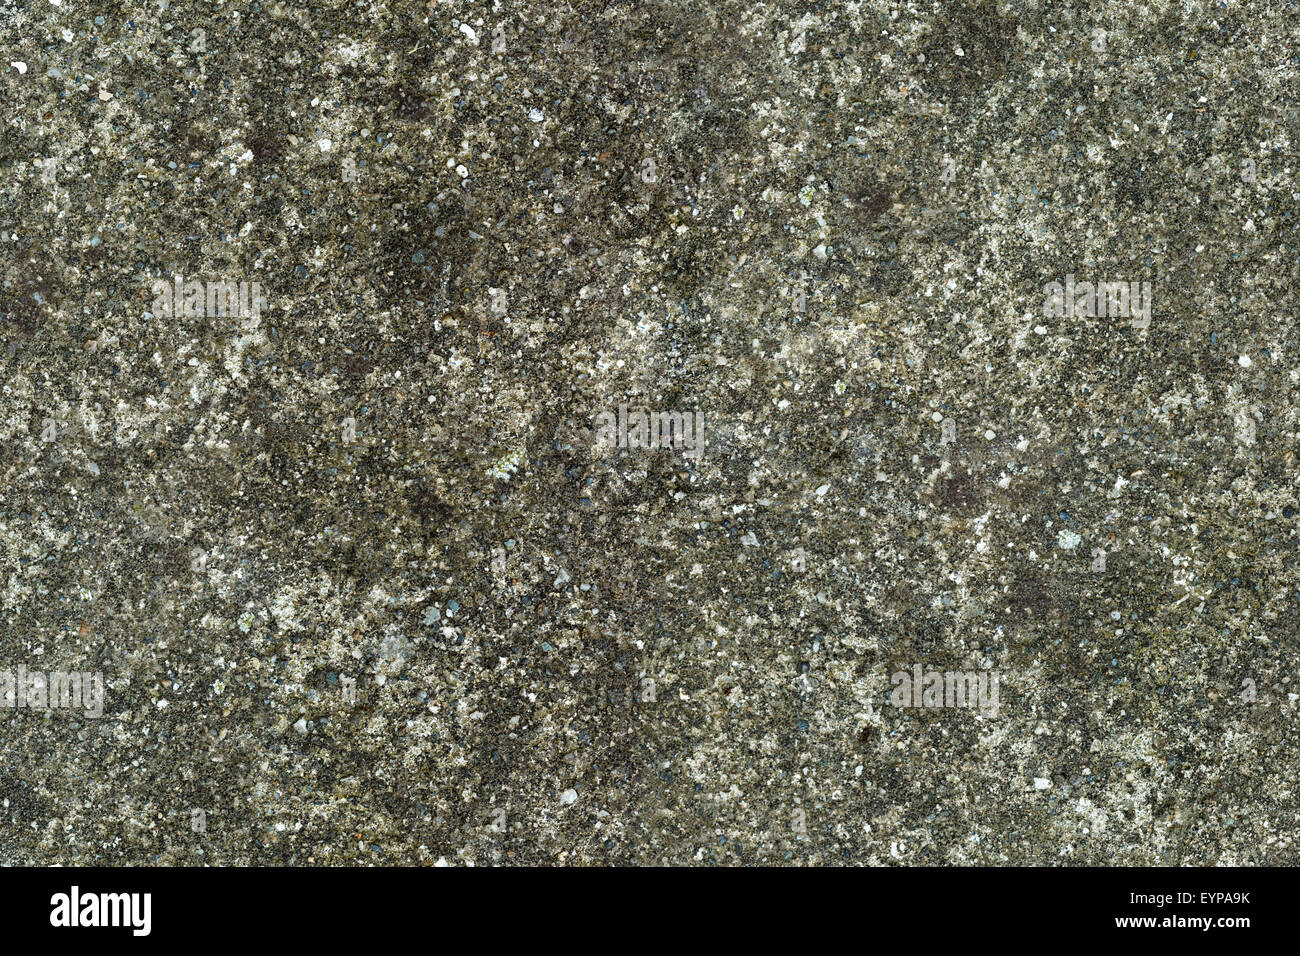 Seamless High Resolution Gray Concrete Ground Texture